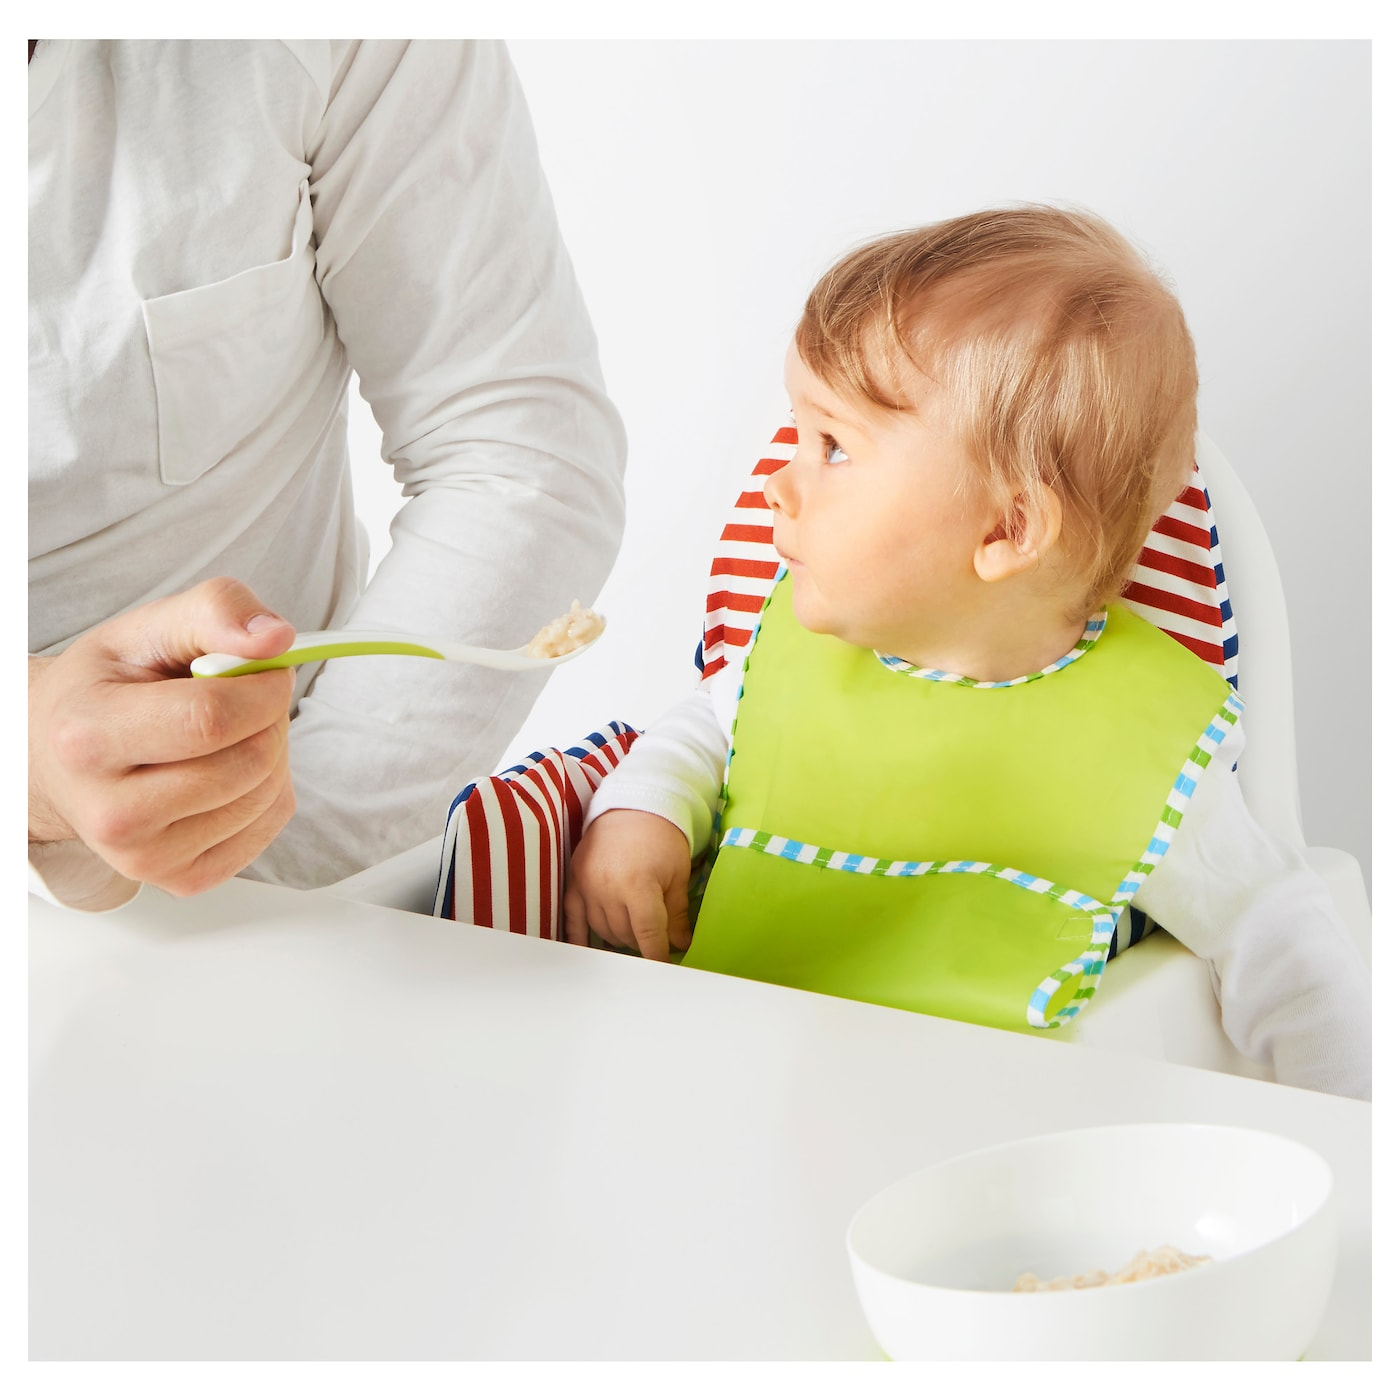 IKEA BÖRJA feeding spoon and baby spoon